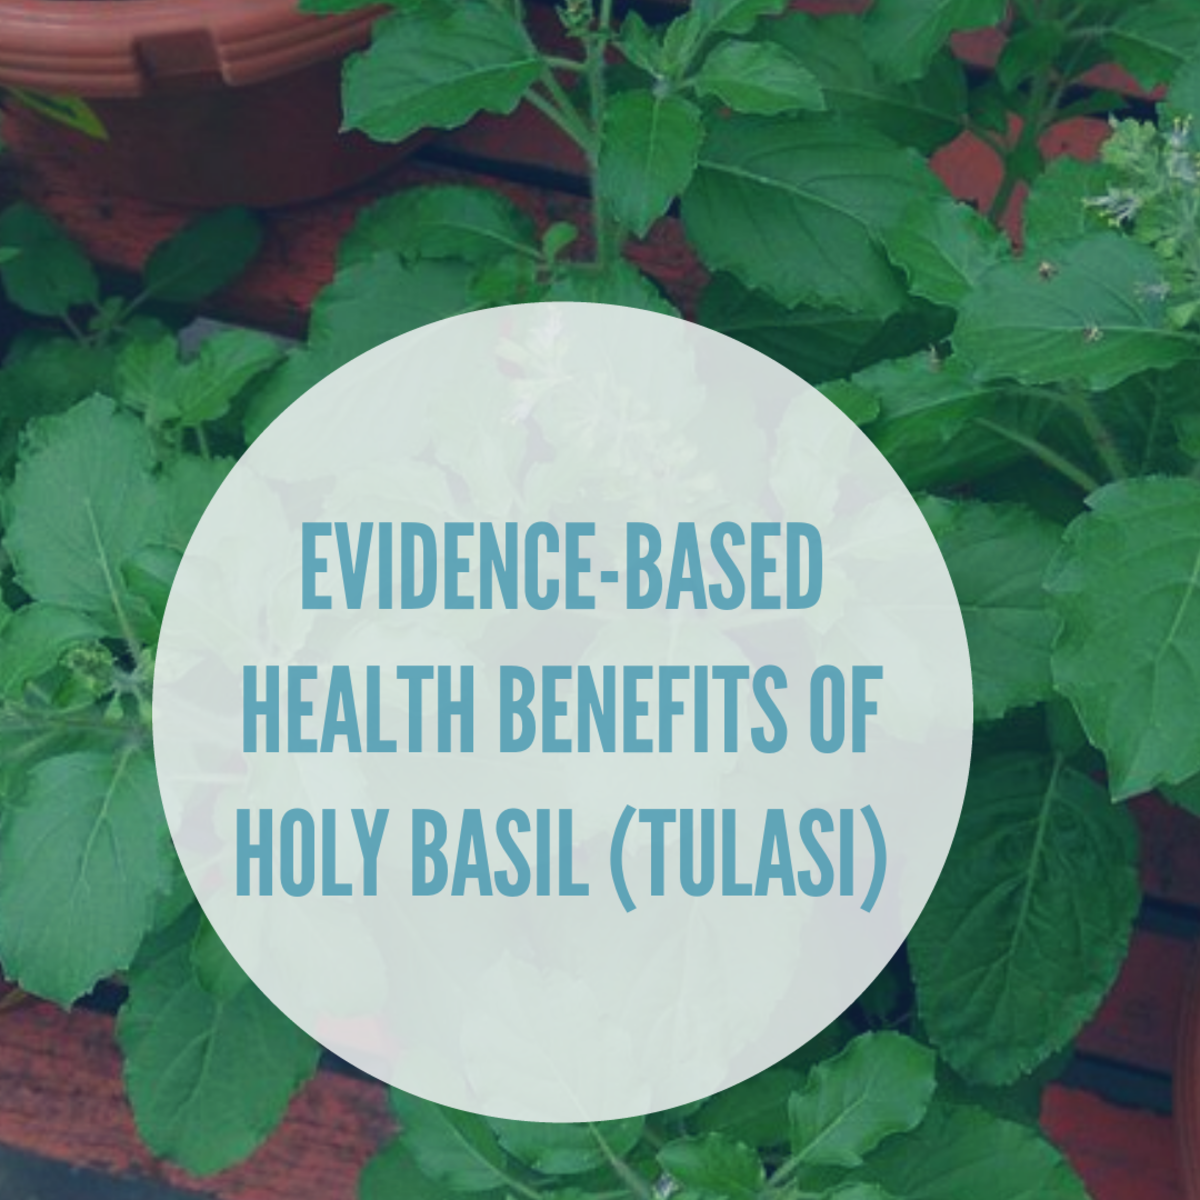 16 Evidence-Based Health Benefits of Holy Basil aka Tulasi